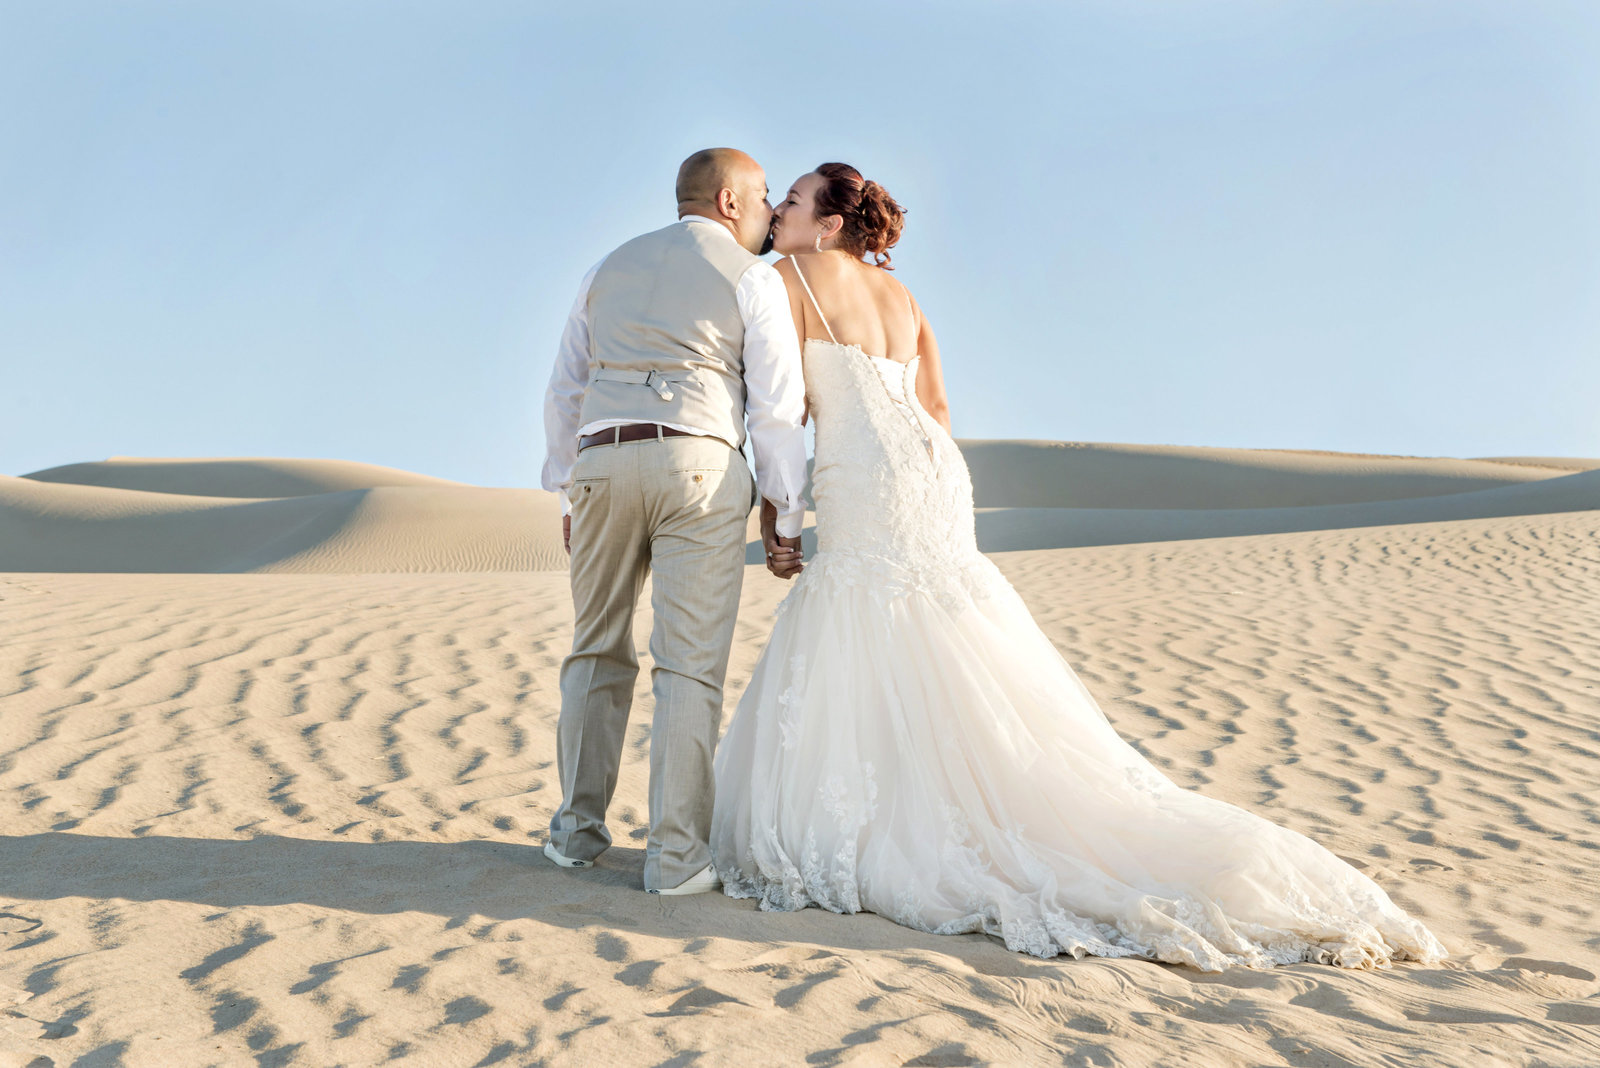 bride and groom kissing on sand dune